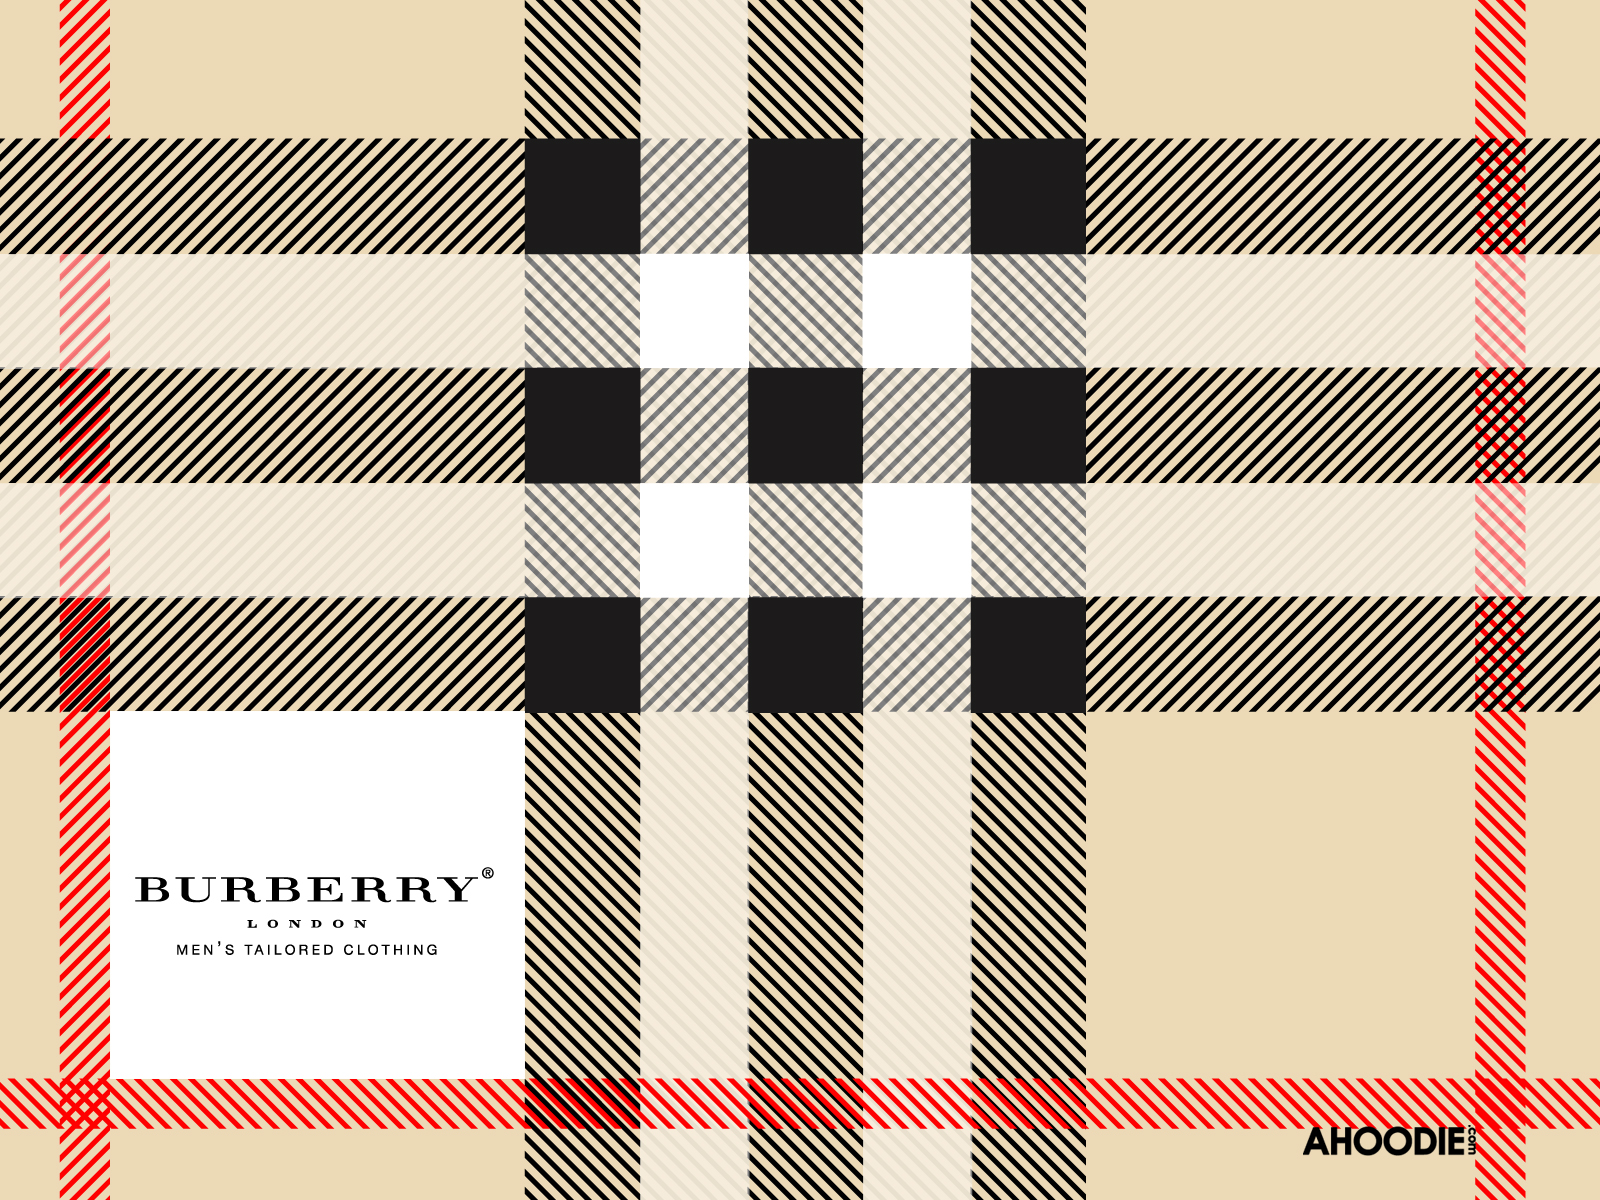 WALLPAPERS: Burberry Desktop Background Wallpaper BurberryWallpaper4